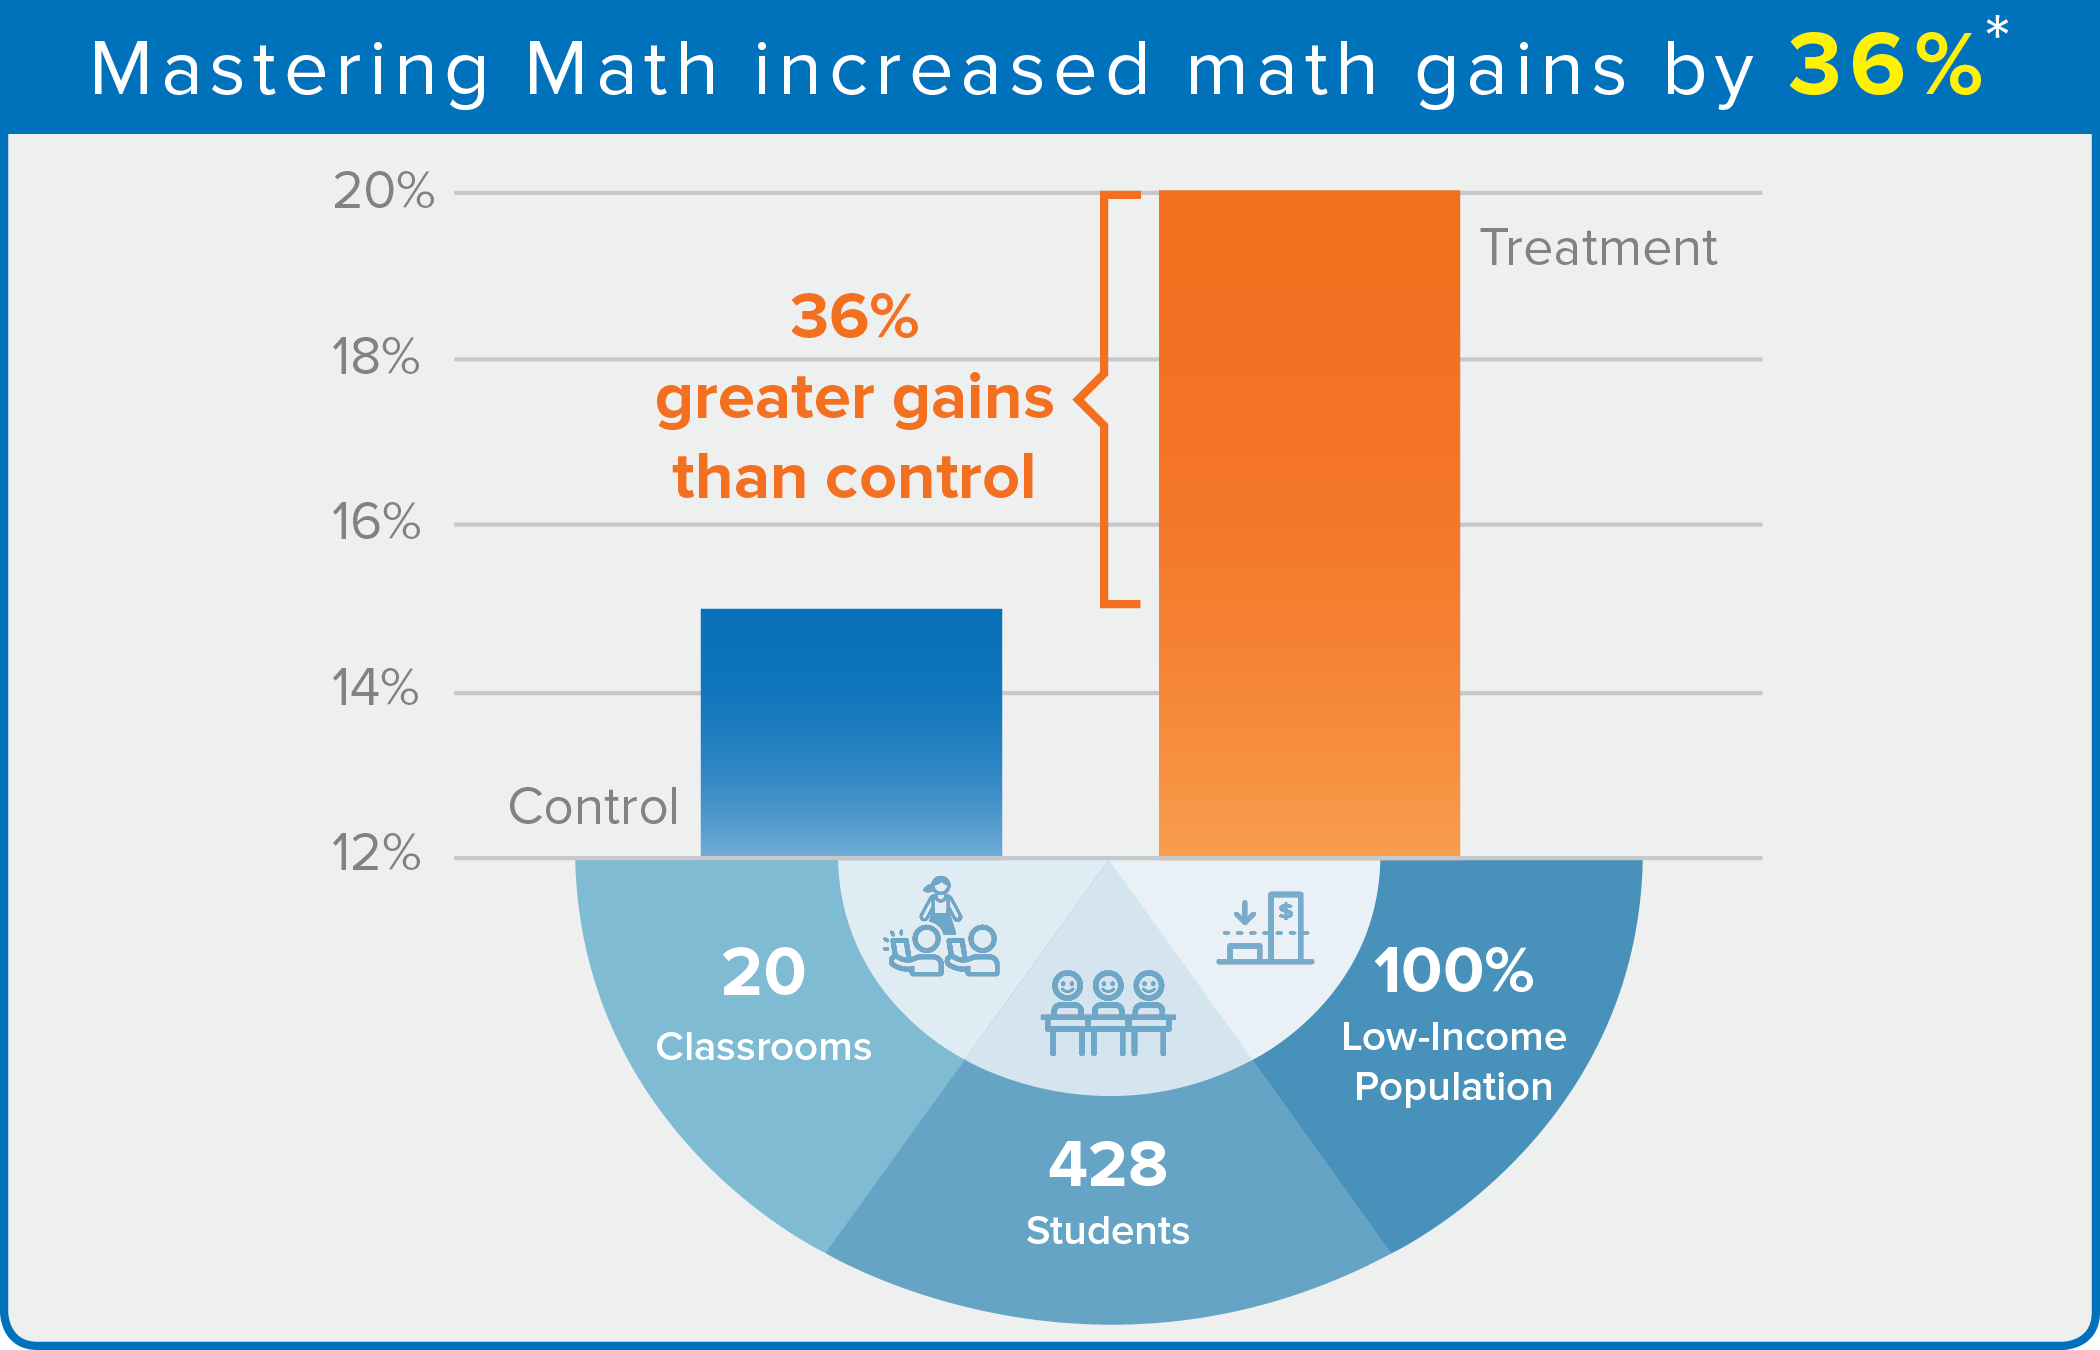 Mastering Math Increased Math Gains by 36%